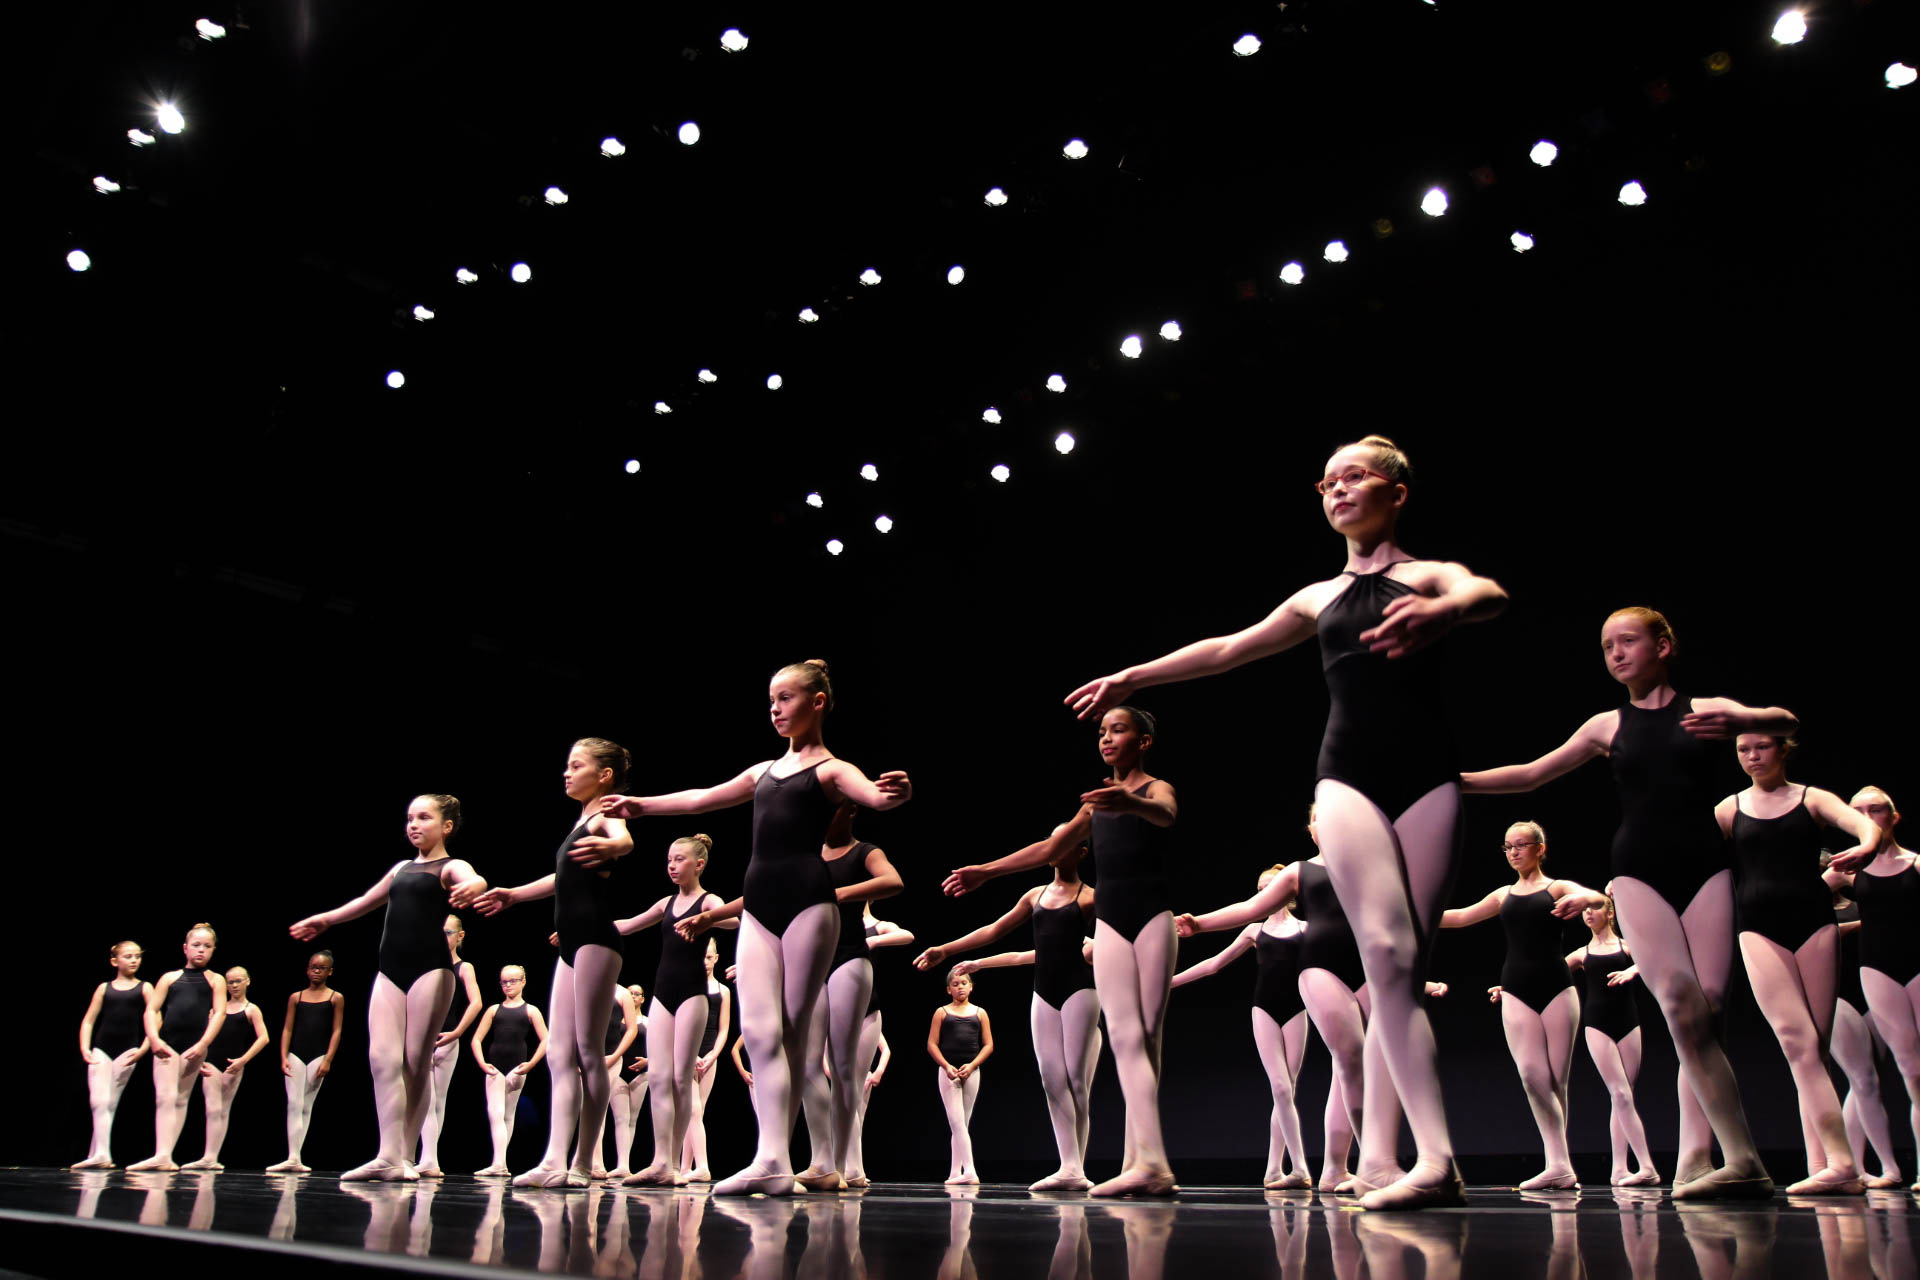 Youth ballet dancers perform at the 2017 Future Stages Festival at the Kauffman Center.